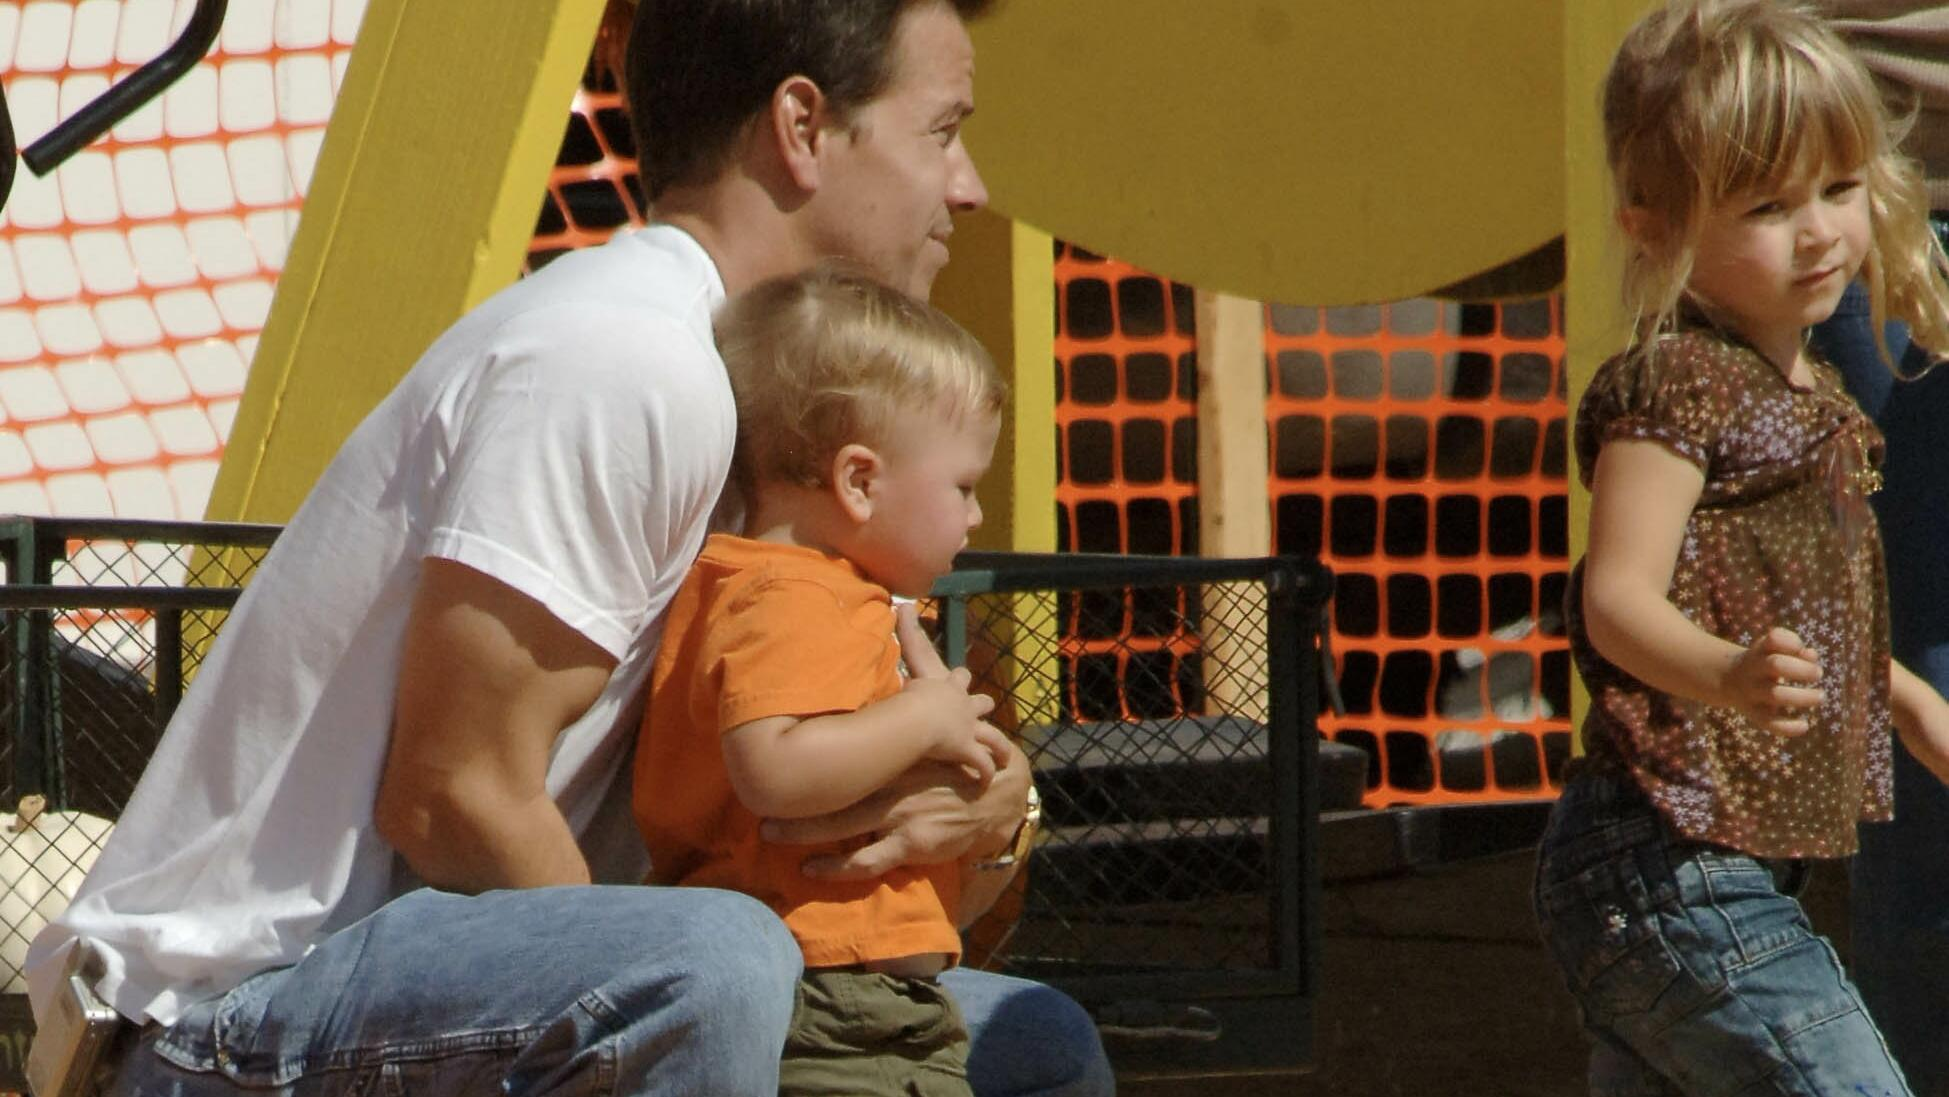 Mark Wahlberg gets mobbed by the paparazzi as he spends the afternoon at Mr Bones Pumpkin Patch in West Hollywood, Ca with girlfriend Rhea Durham and their young children Michael and Ella